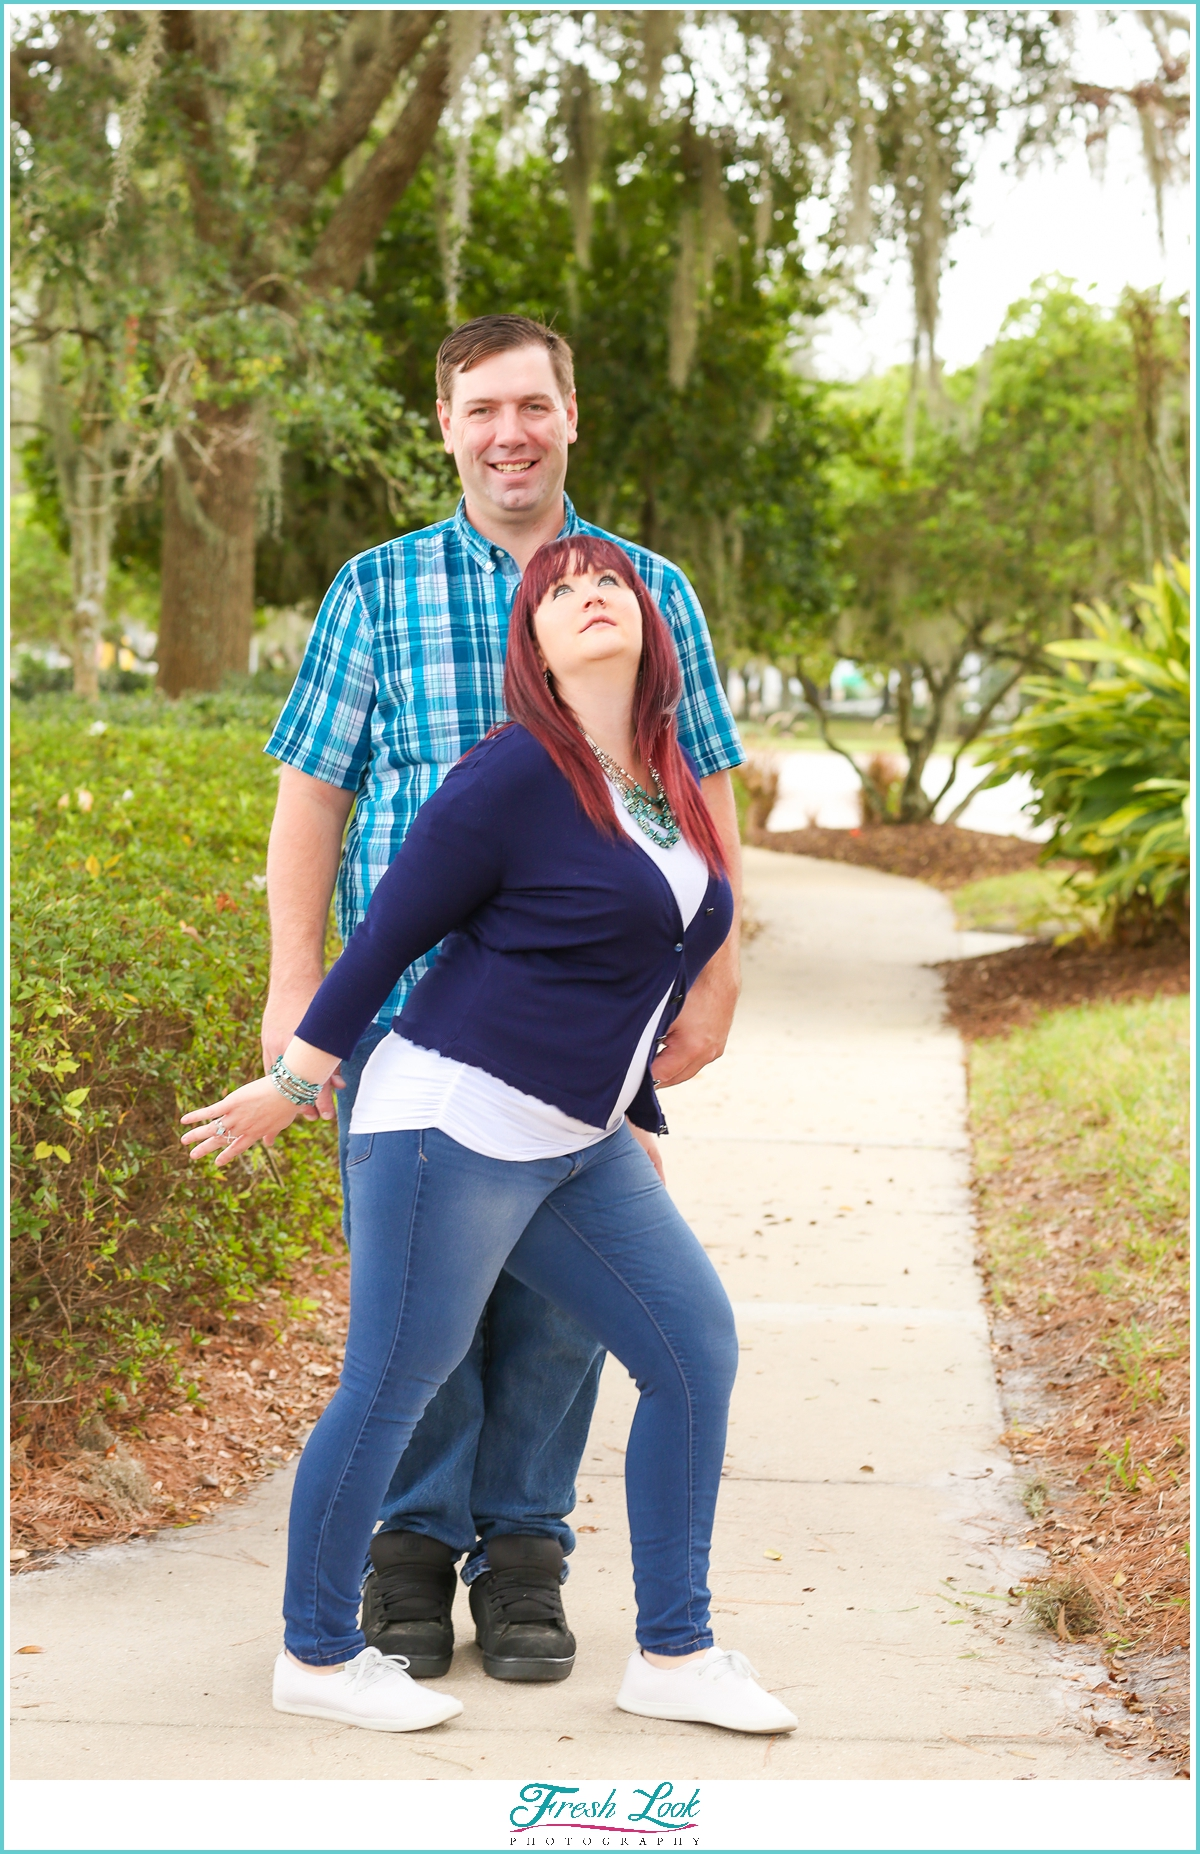 fun couples photoshoot ideas